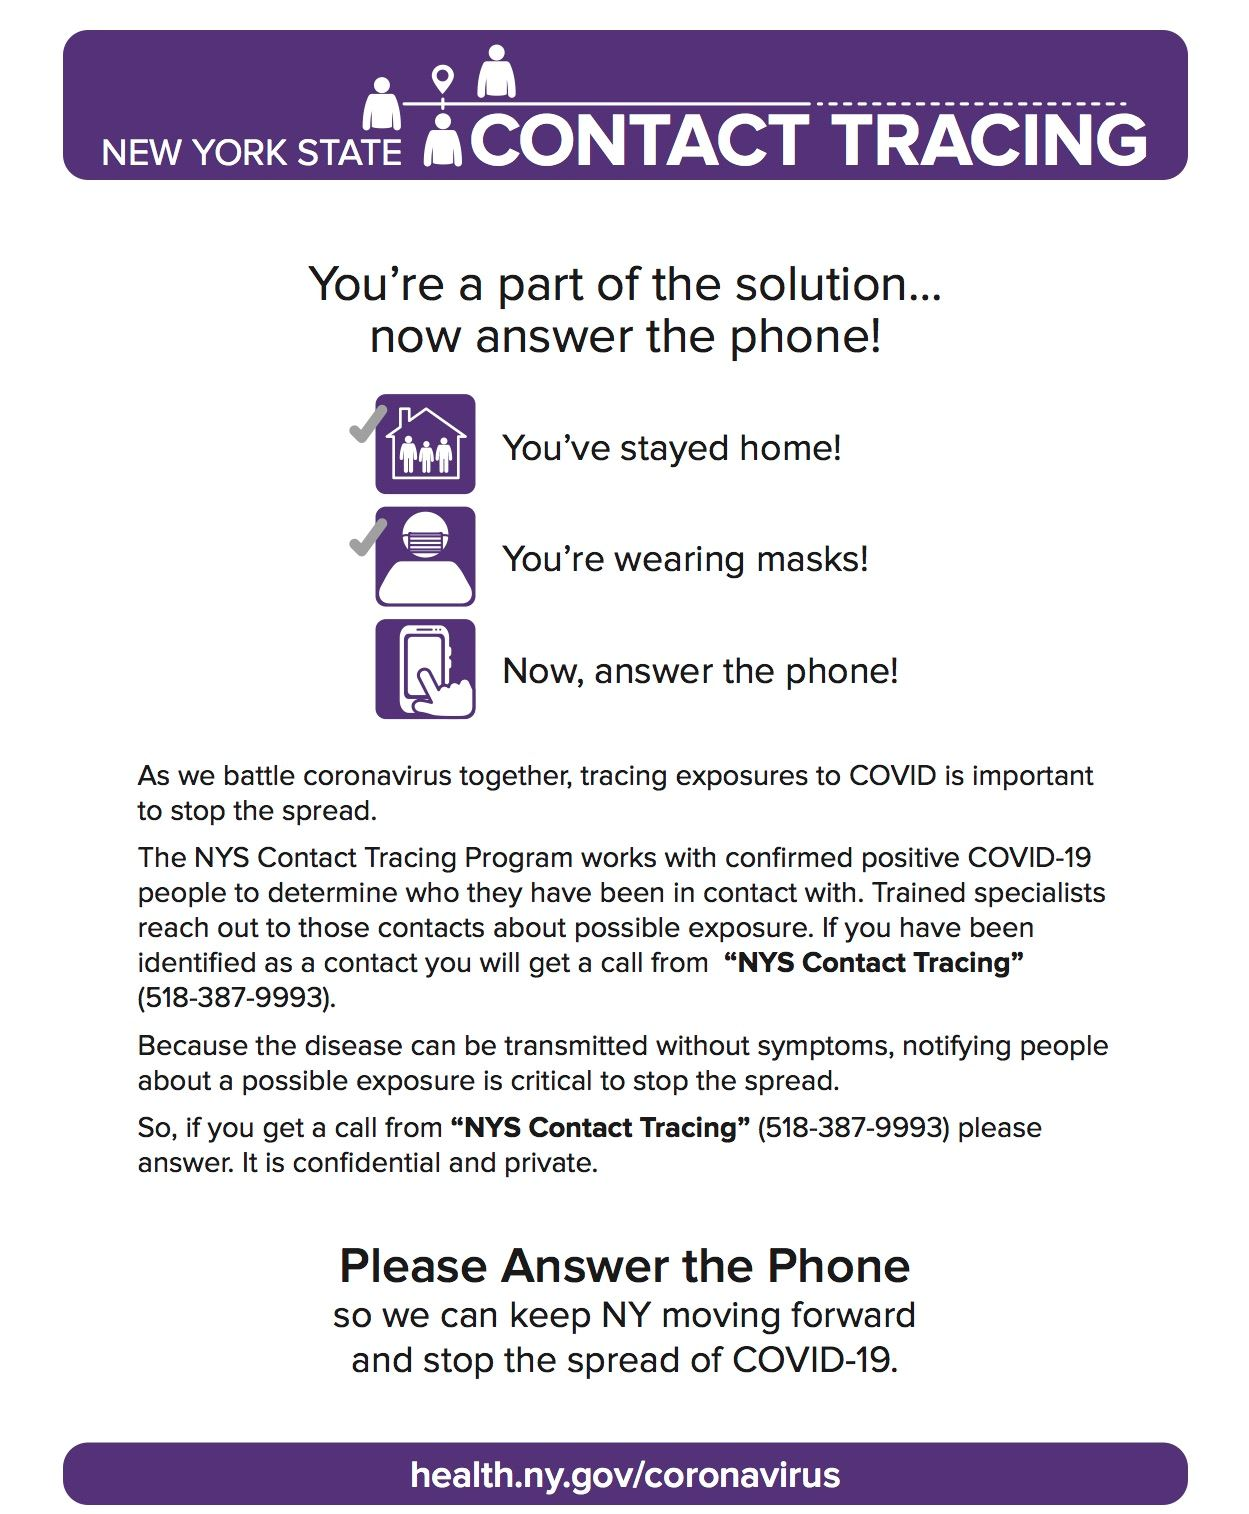 NYSContactTracingFlyer